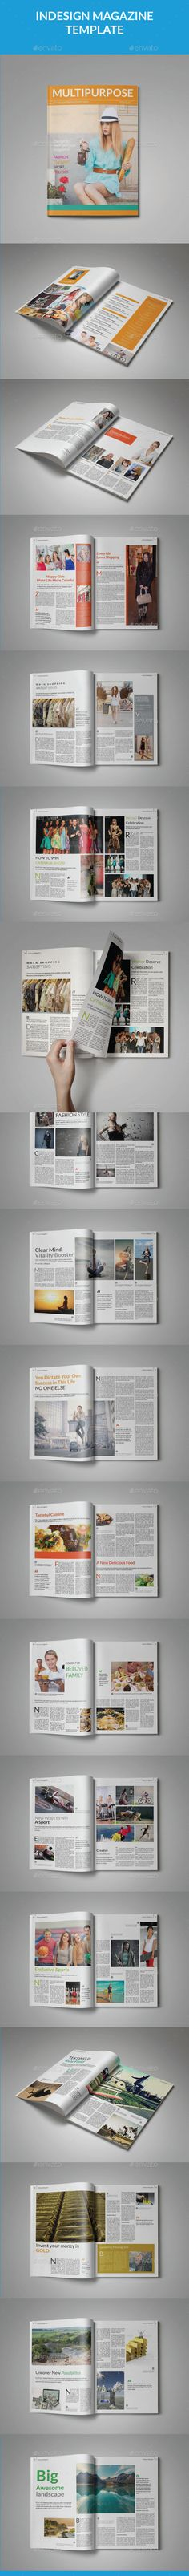 A5 Universal Magazine Template InDesign INDD. Download here: http://graphicriver.net/item/a5-universal-magazine-template/15239430?ref=ksioks